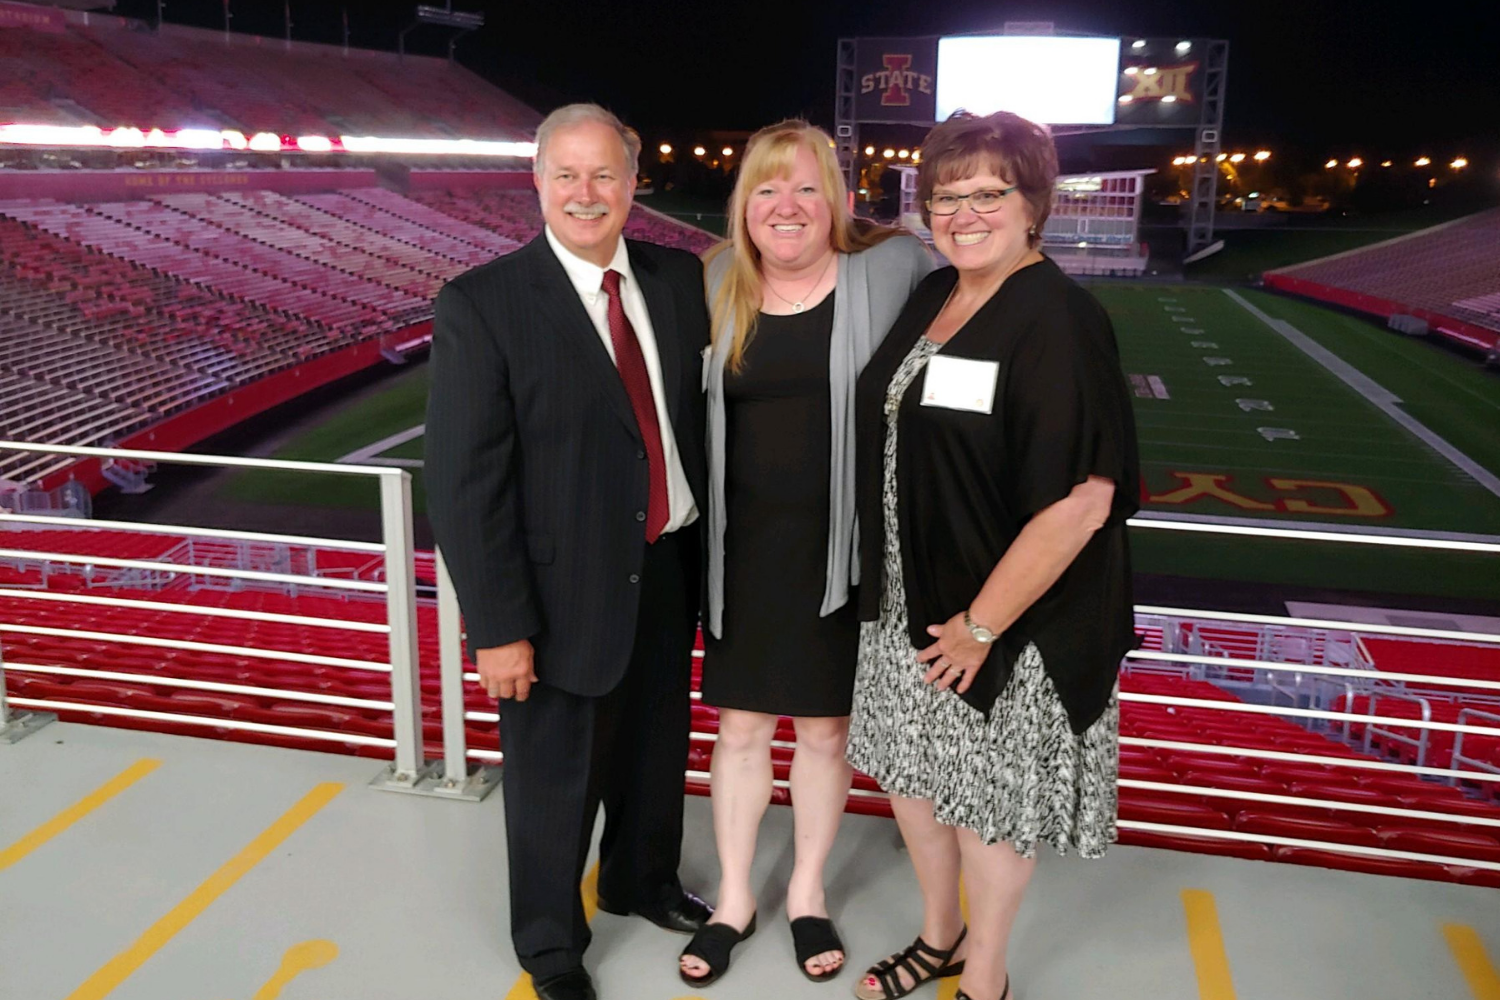 Lisa Griebel (Agar) poses with her former SFLS teachers, Rod and Tina Lenz, at the September 14 Iowa State University Hall of Fame Induction Ceremony.